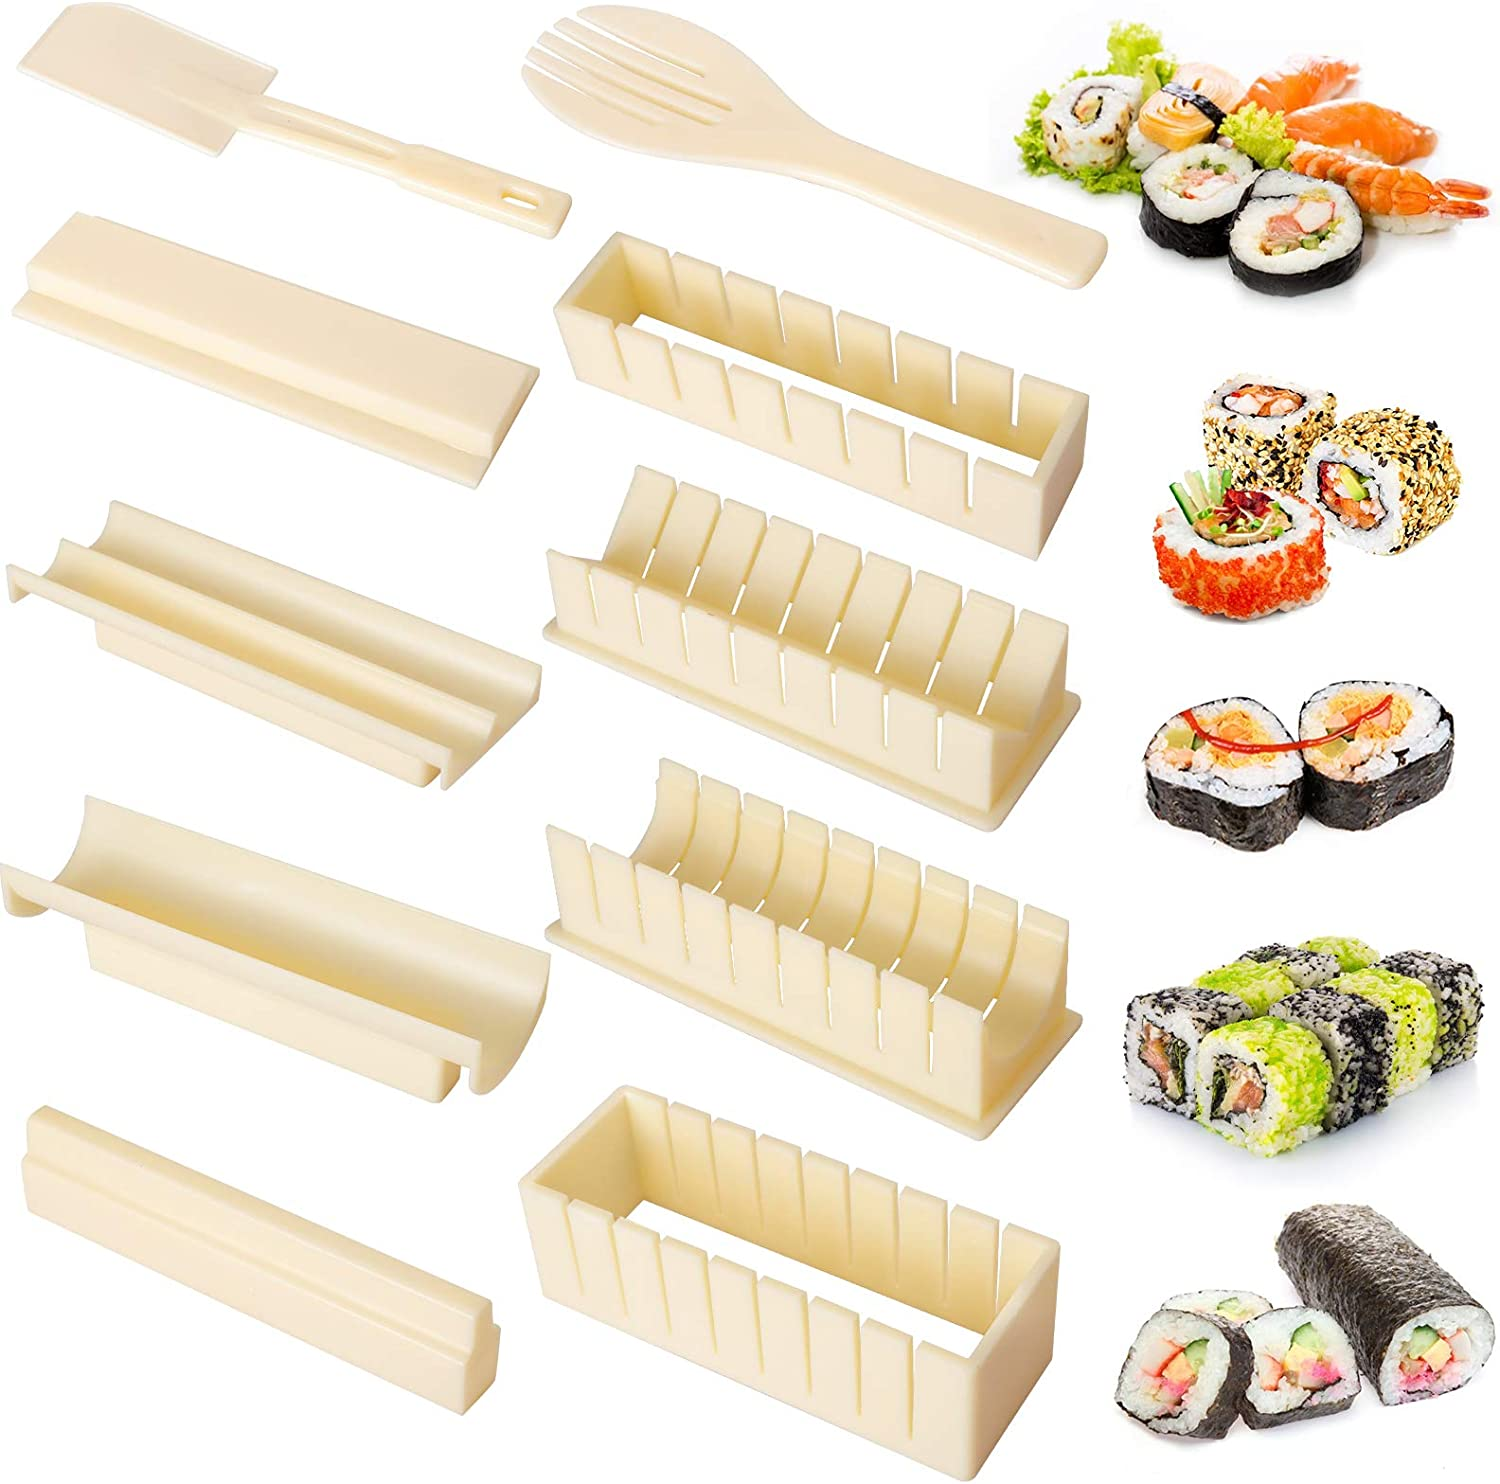 Inmorven Sushi Making Kit, Deluxe All In One Sushi Maker Set for Beginners, 10 Pieces Plastic Sushi Maker Tool, with 8 Sushi Rice Roll Mold Shapes, Fork, Spatula for Kitchen Home DIY Sushi(Off-white)